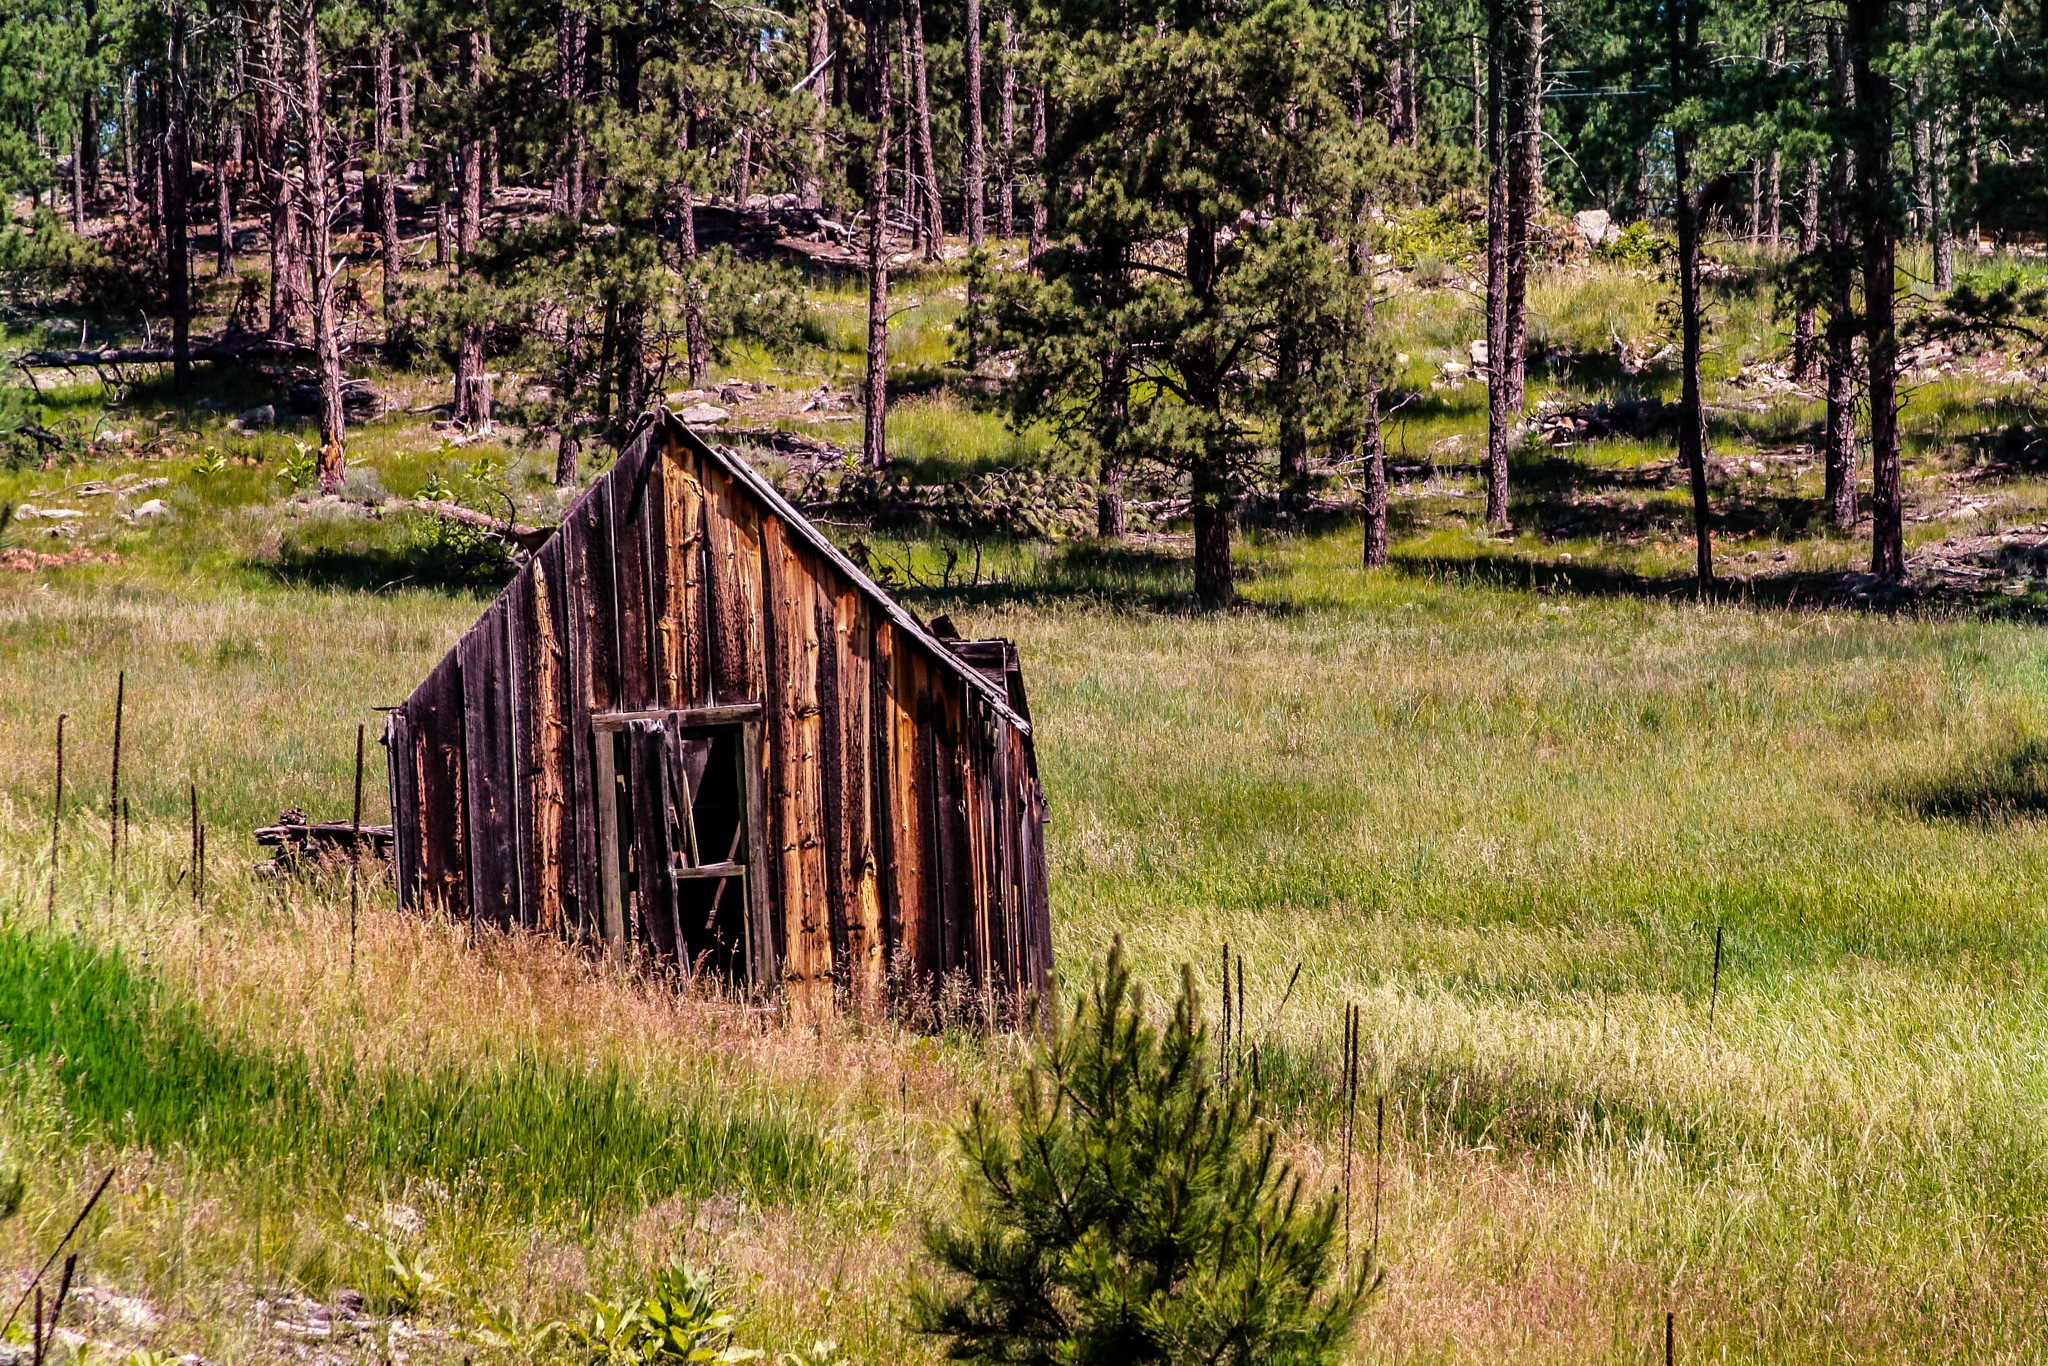 Old Cabin 2014 by drchad480